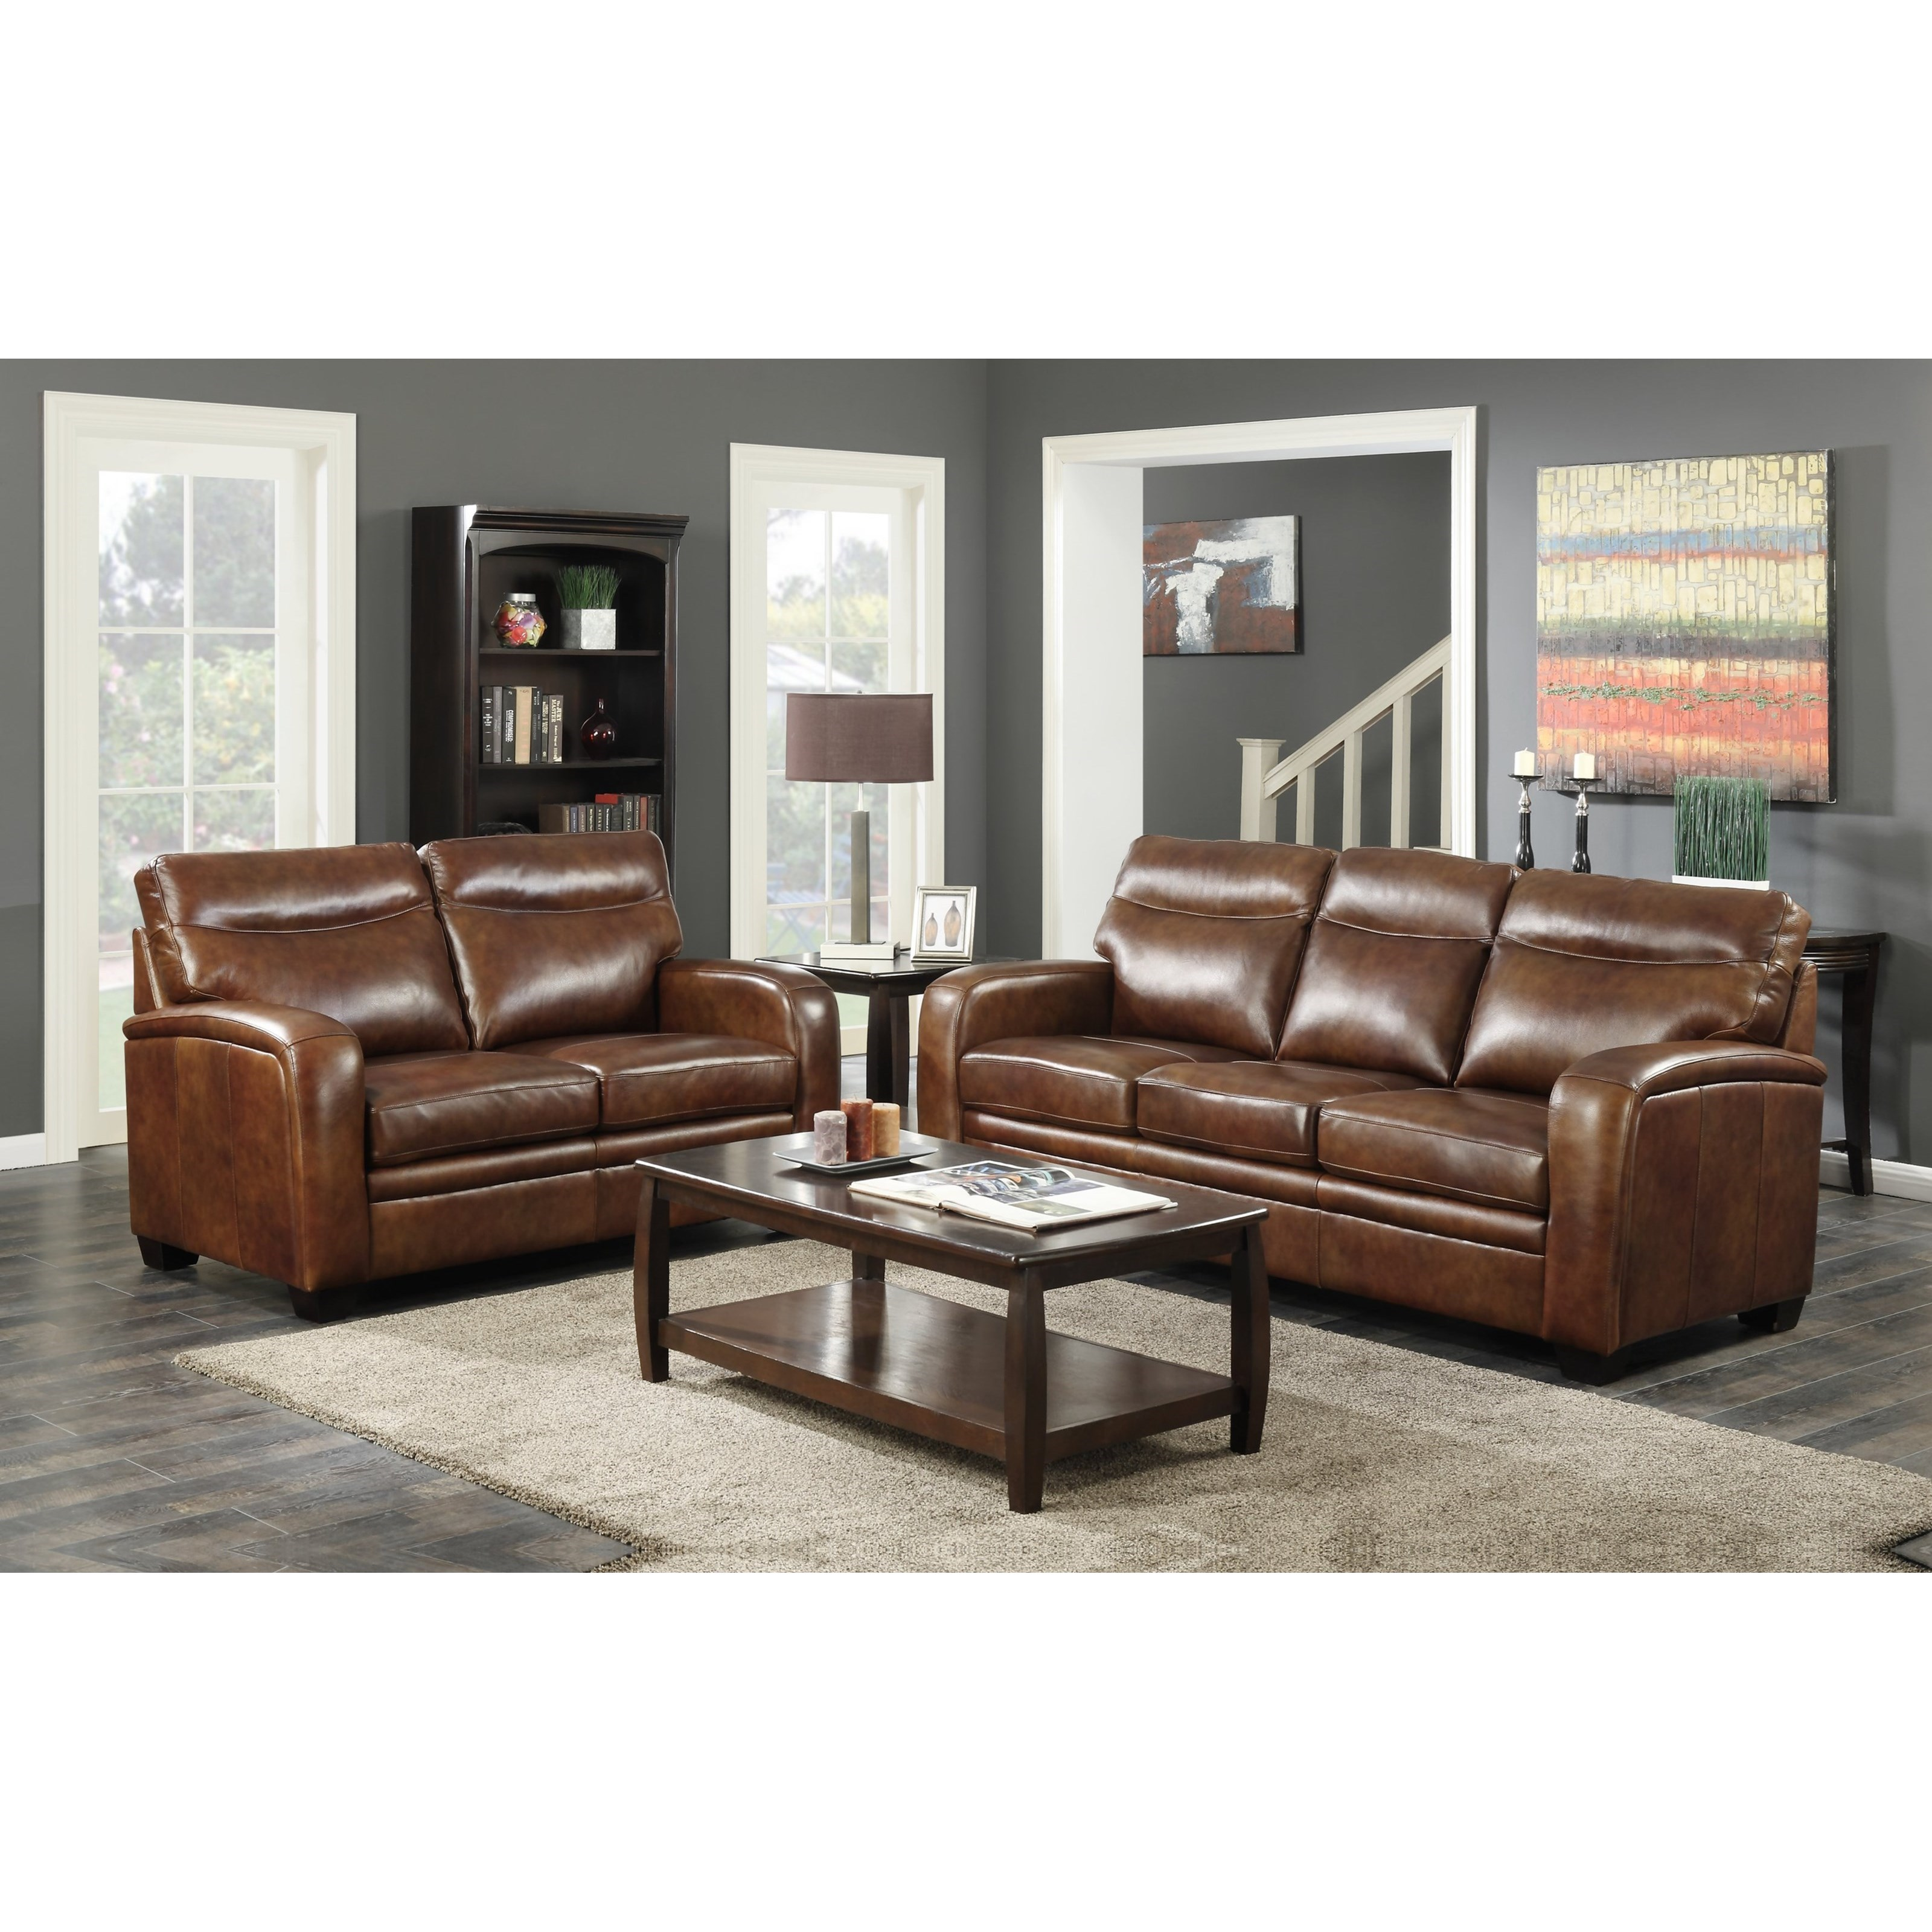 living room furniture groupings montebello stationary living room home 13312